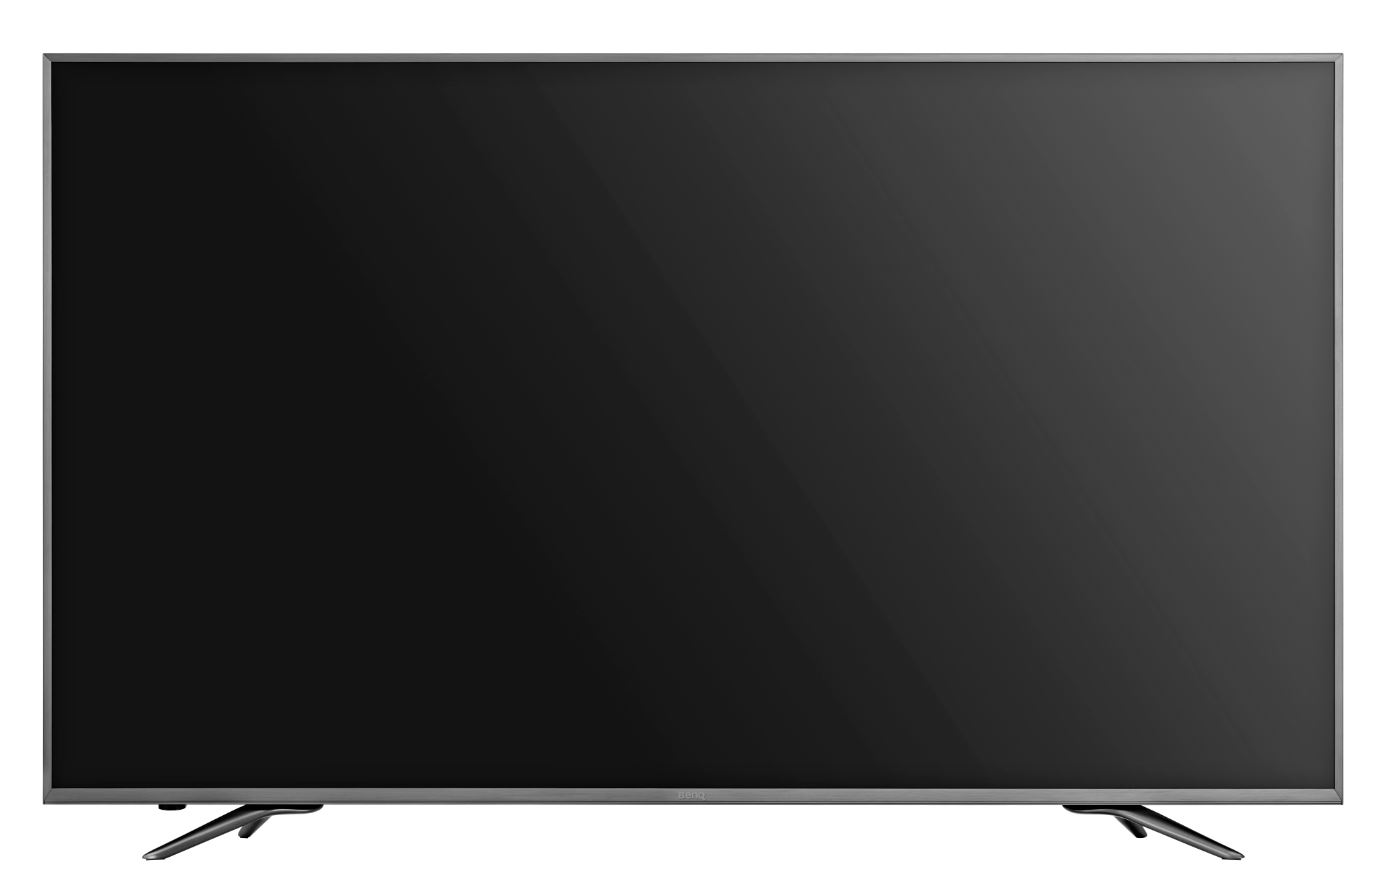 55 inch UHD HDR Eye-care Smart Display / BenQ Corporation